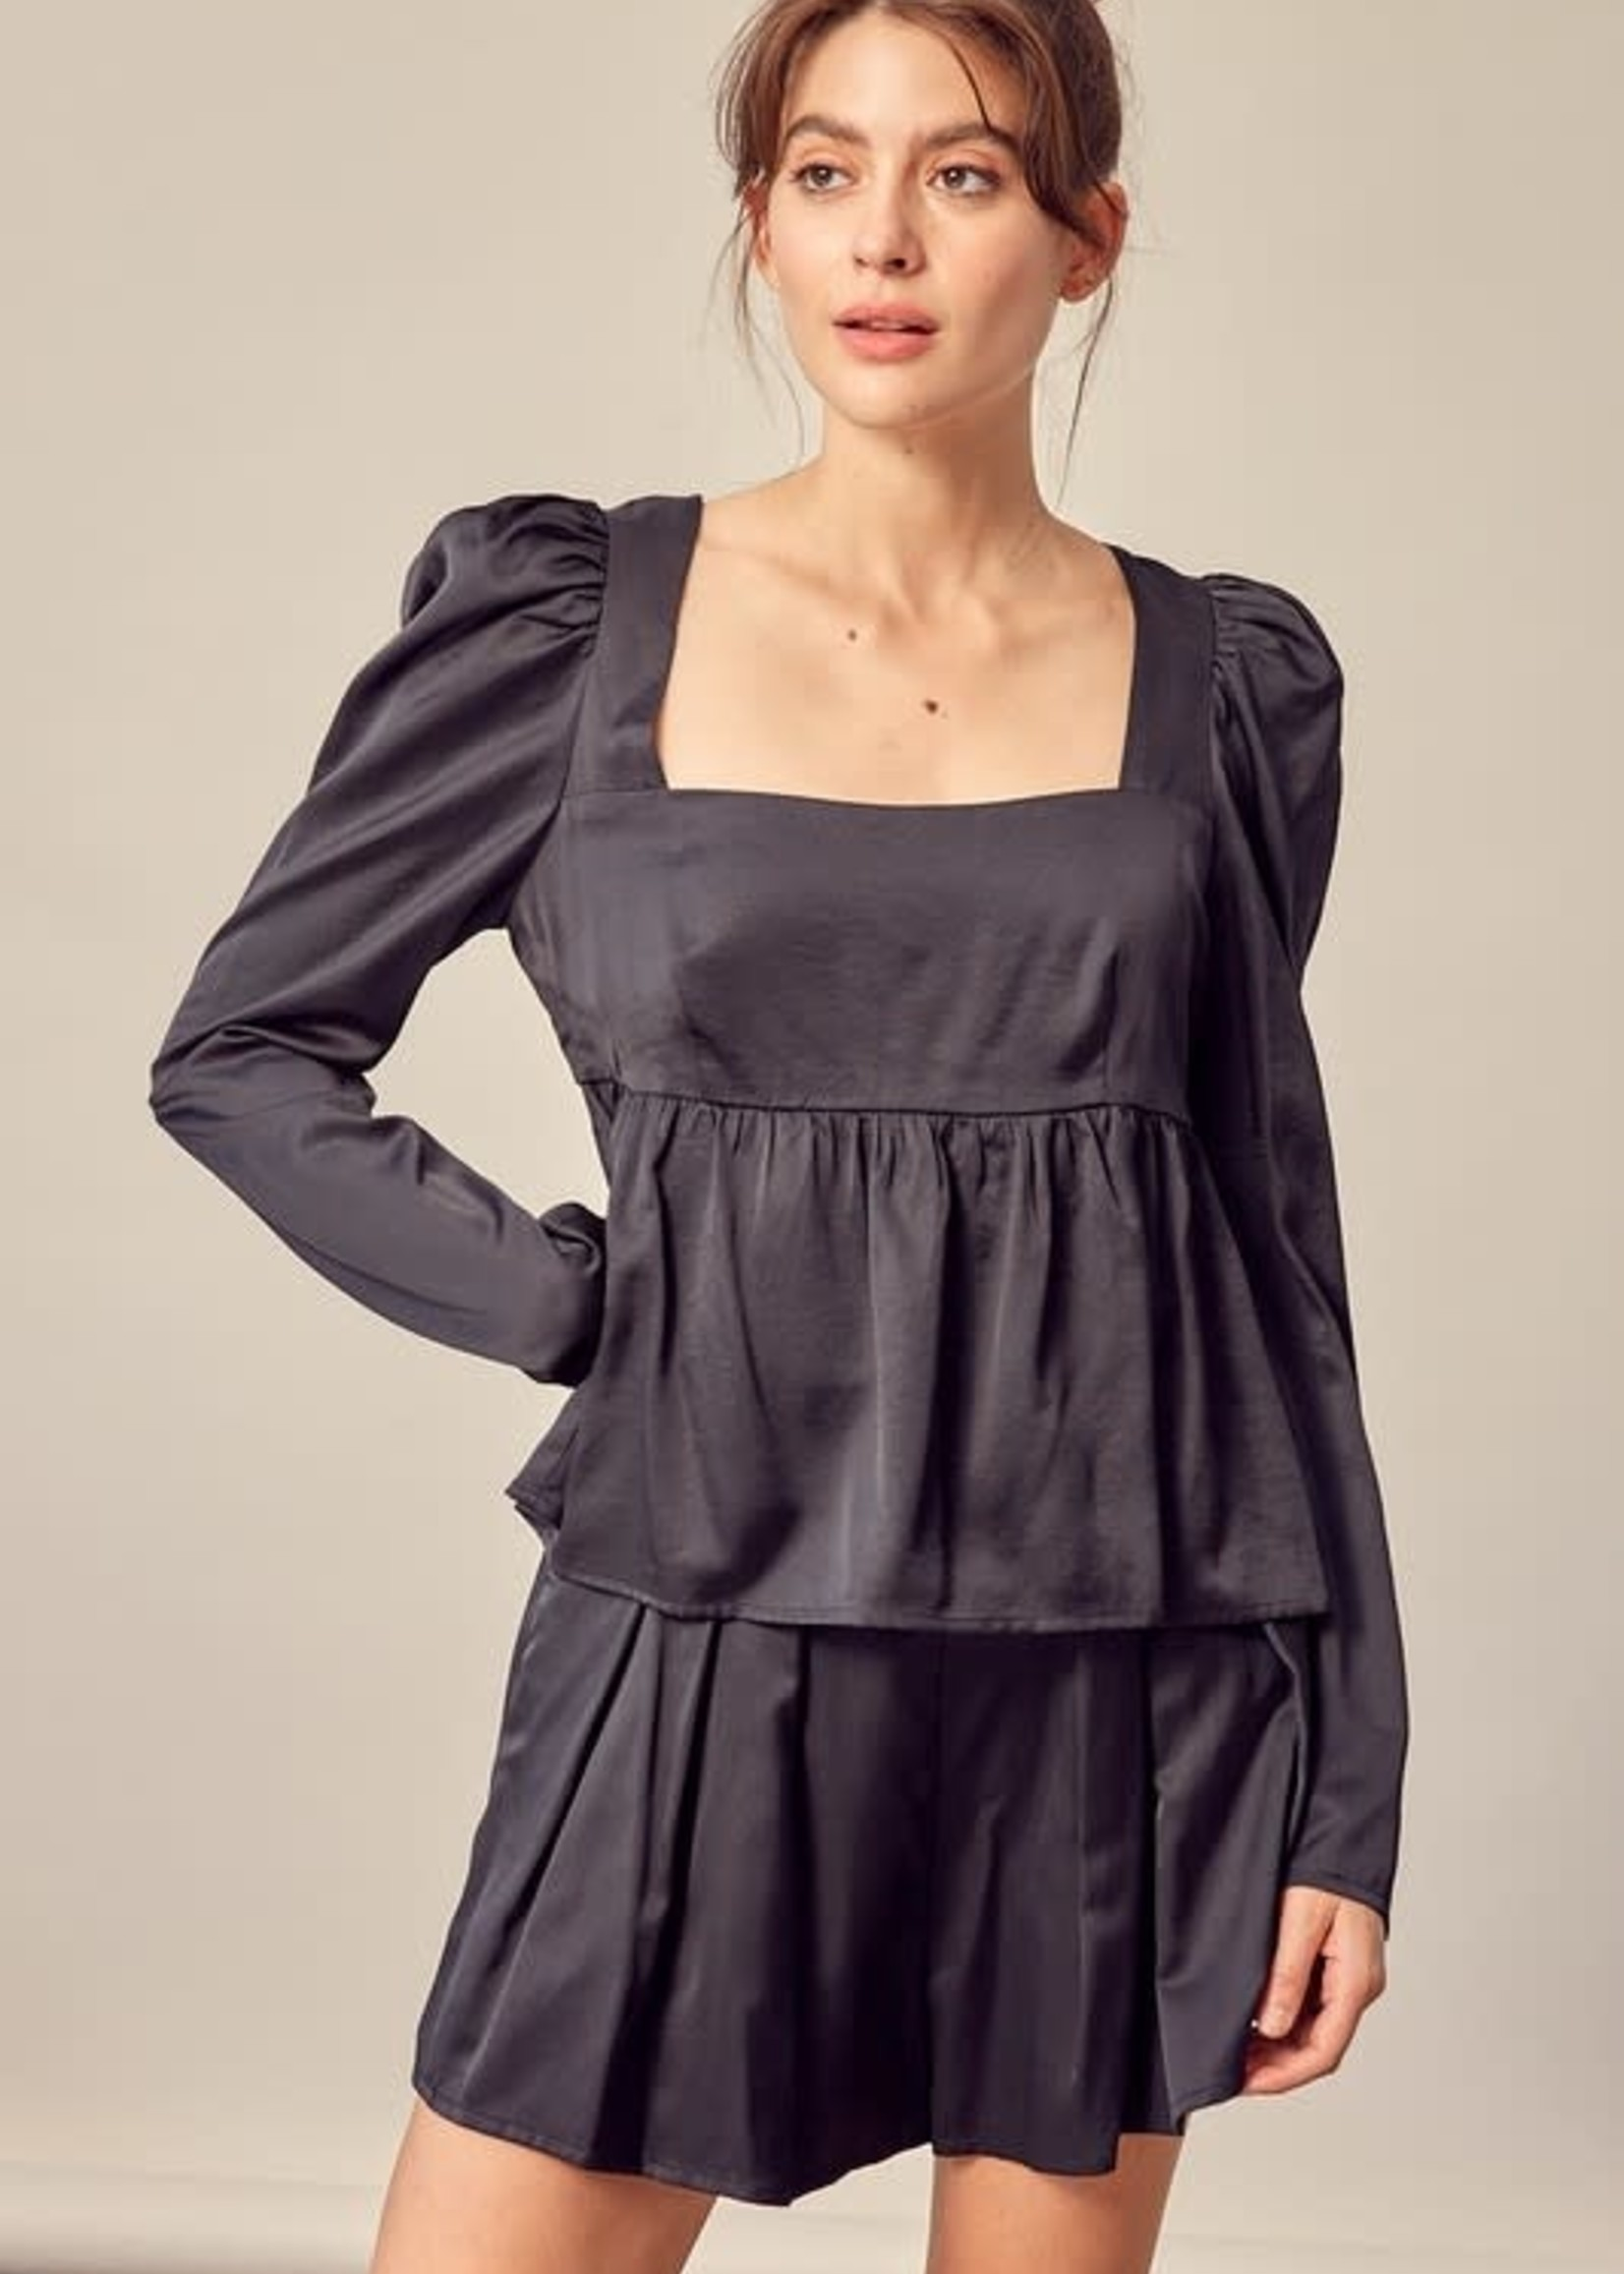 Oh Baby Doll Top (2 Colors)